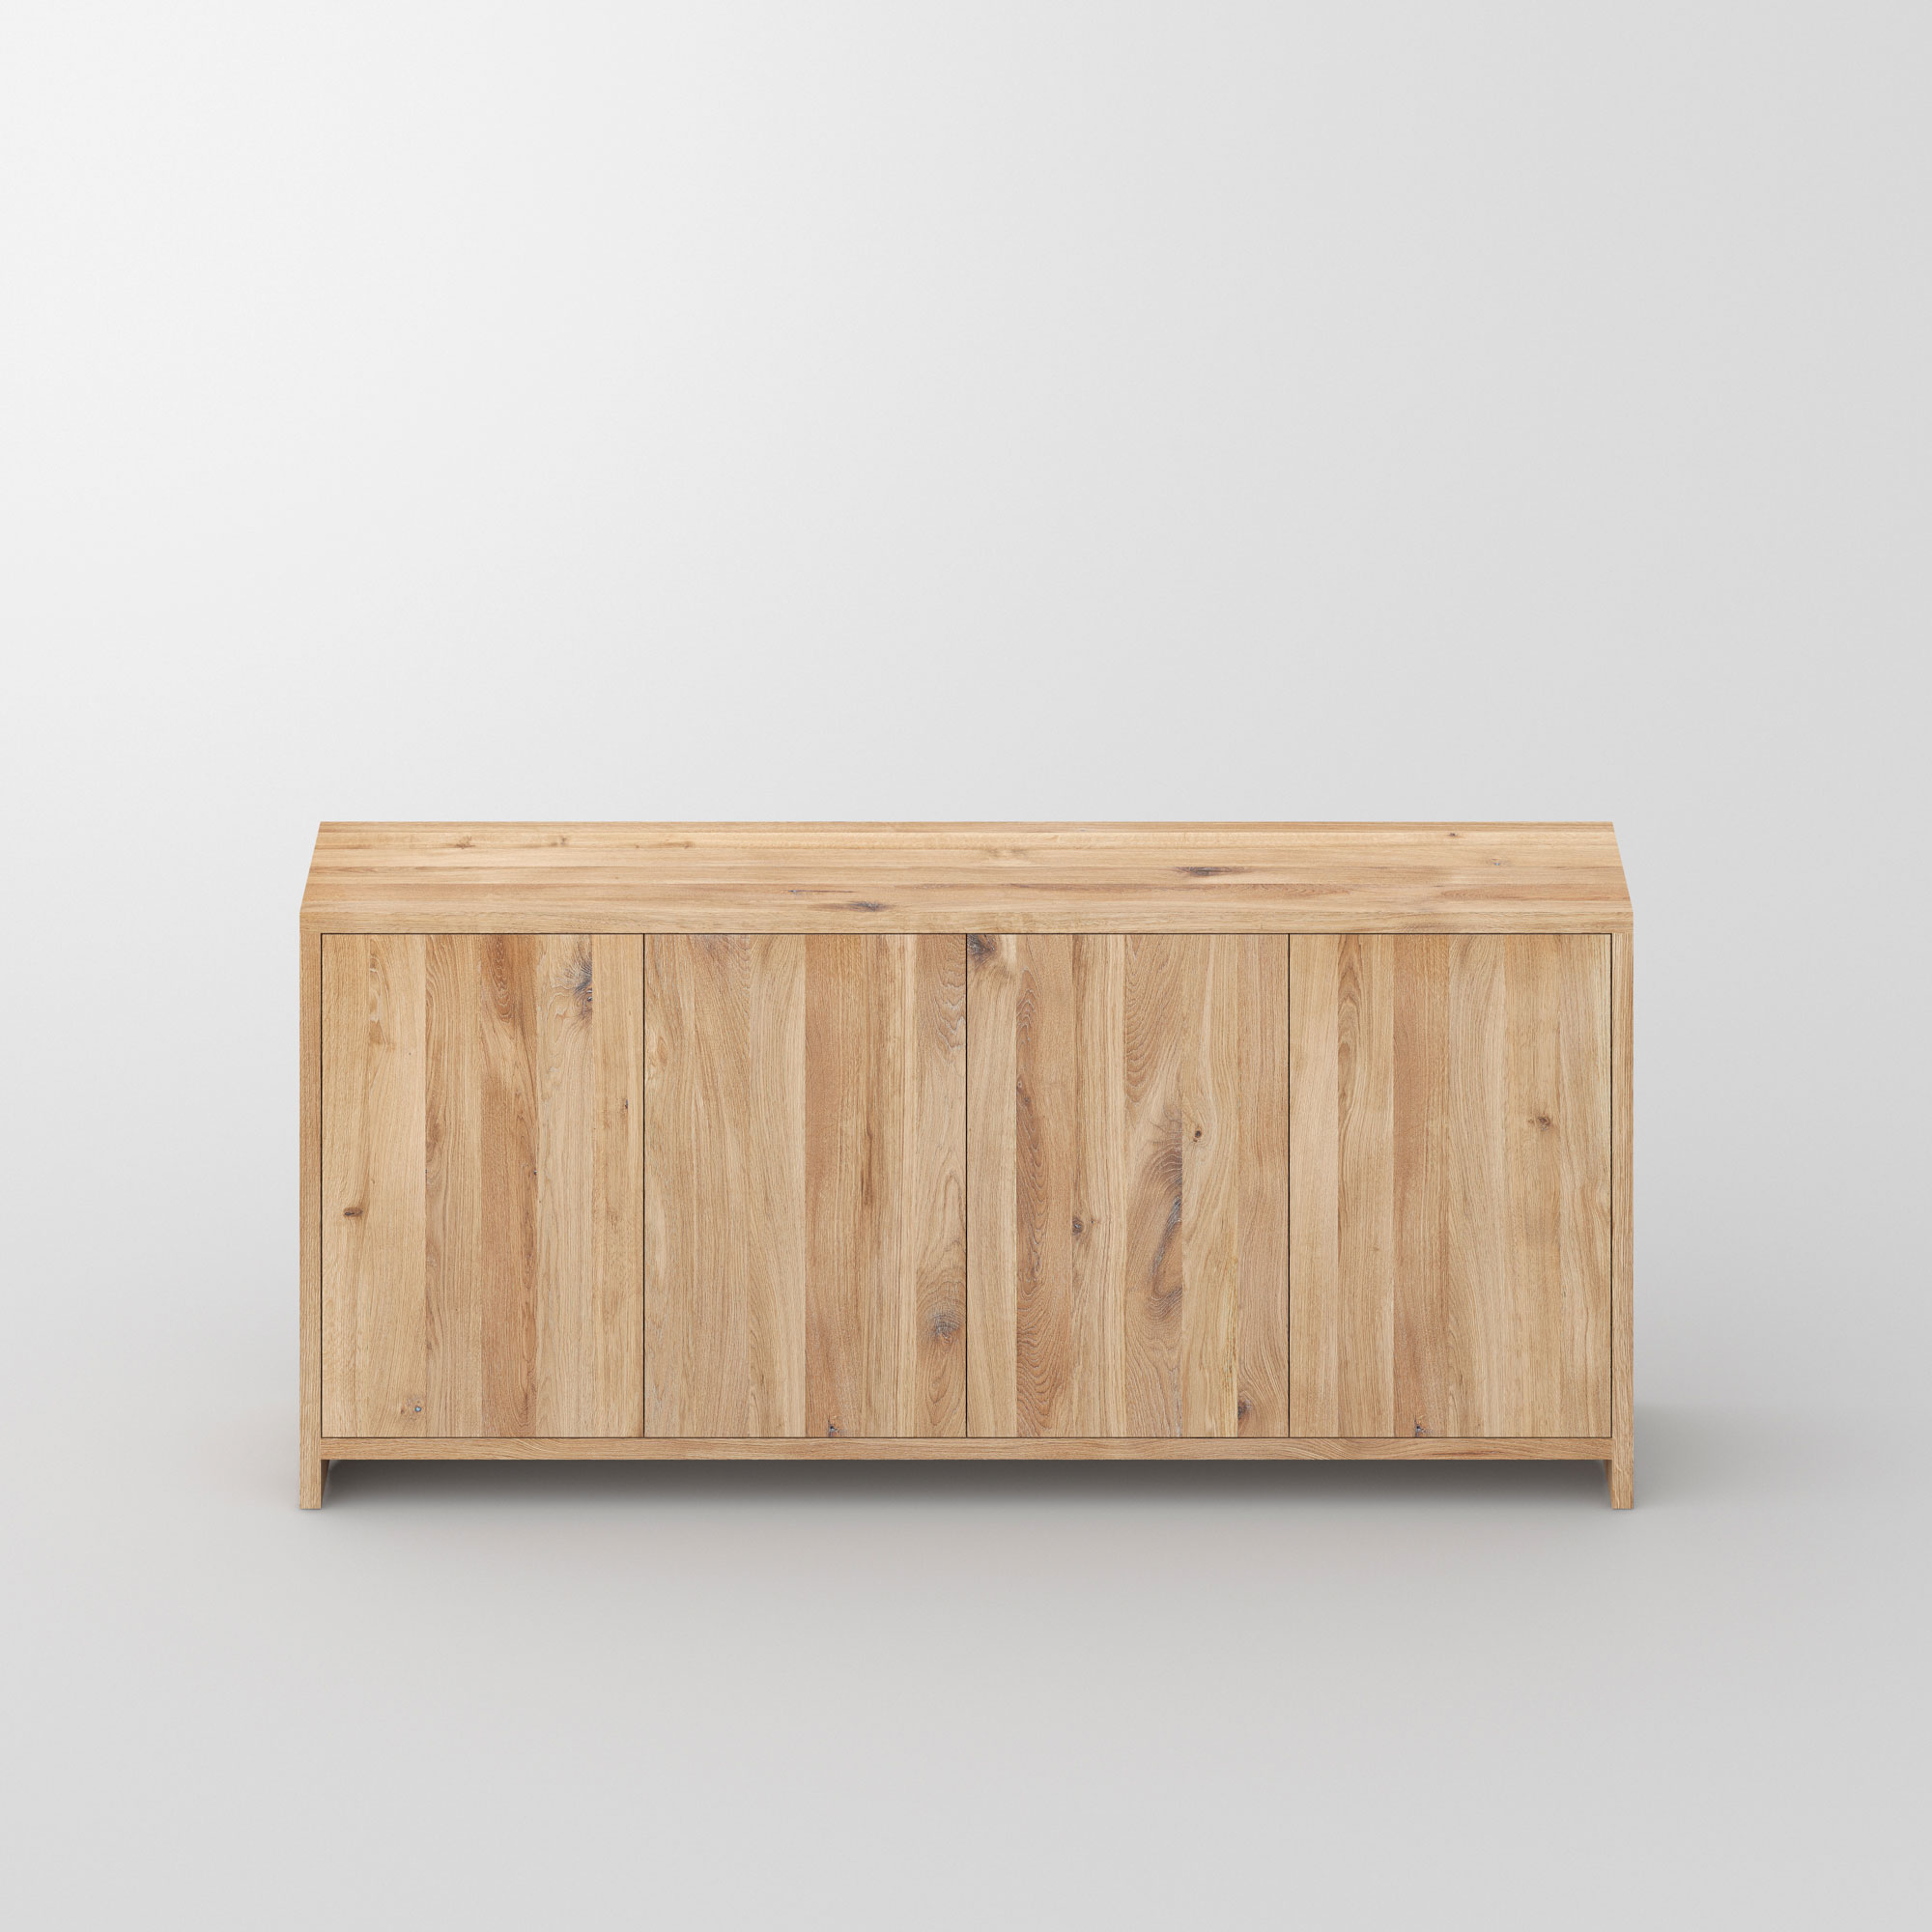 Tailor-Made Sideboard MENA F cam2 custom made in solid wood by vitamin design